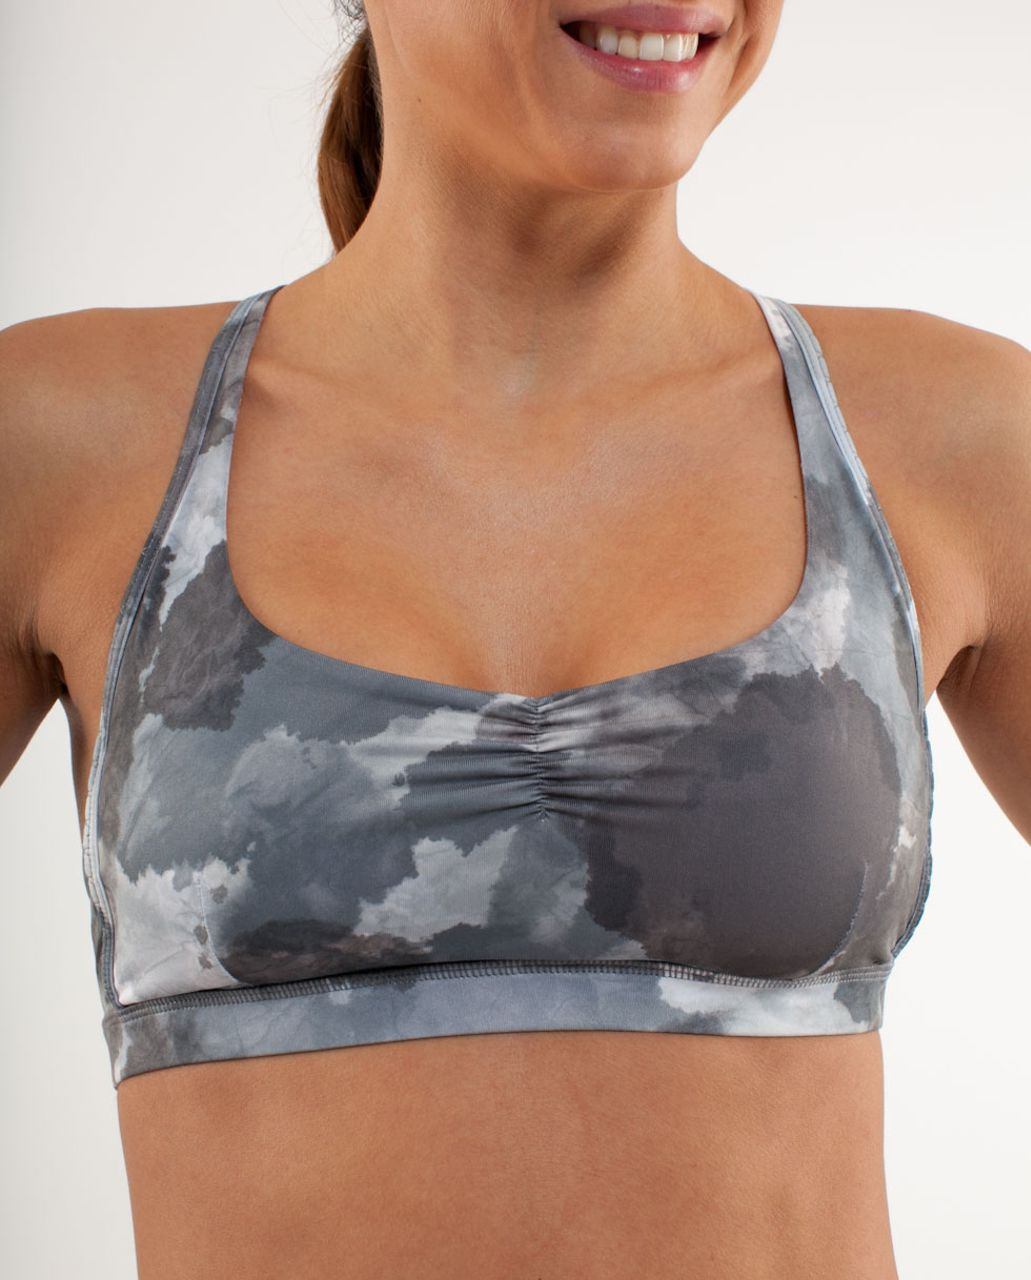 Lululemon Hot 'N Sweaty Bra - White Coal Tinted Canvas Super